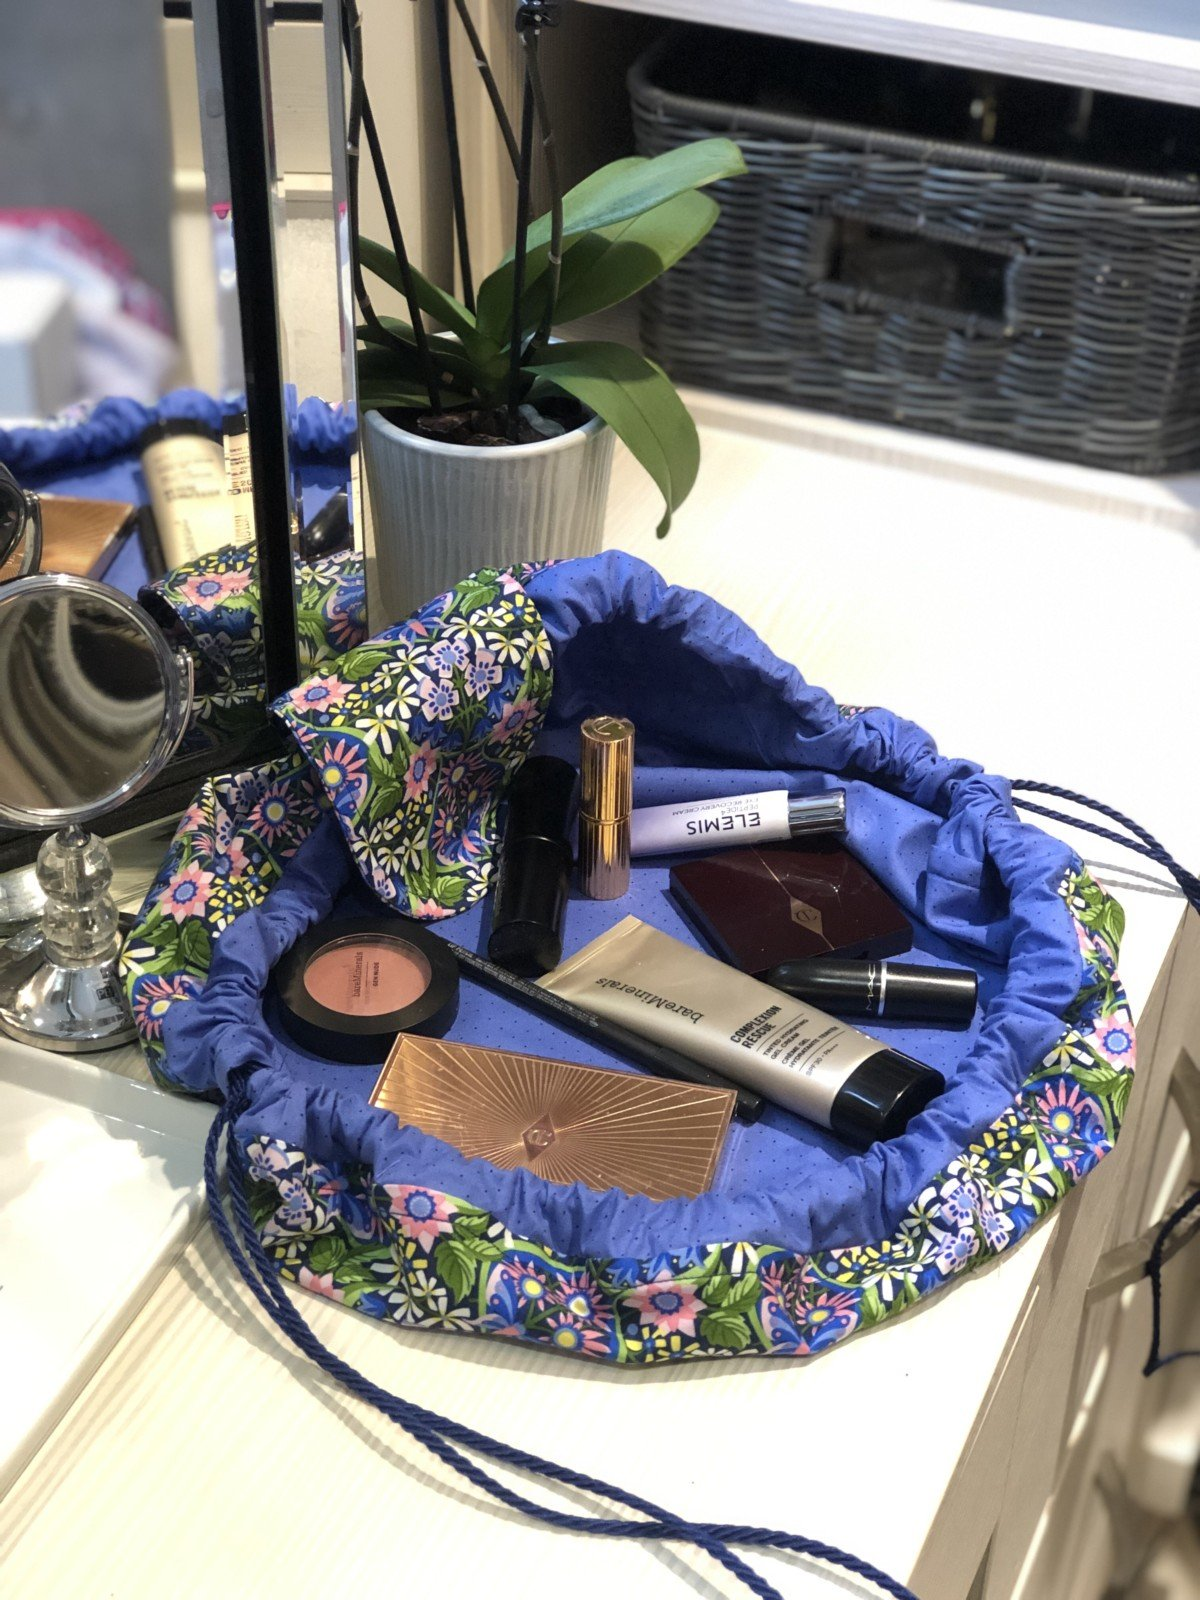 Dressing table, Stunning art deco mackintosh style fabric make up bag. This hand sewn make up bag can be made from ripstop materiel so it can be wiped clean or cotton to be washed. I chose the easier option but the brightest fabric I could find.